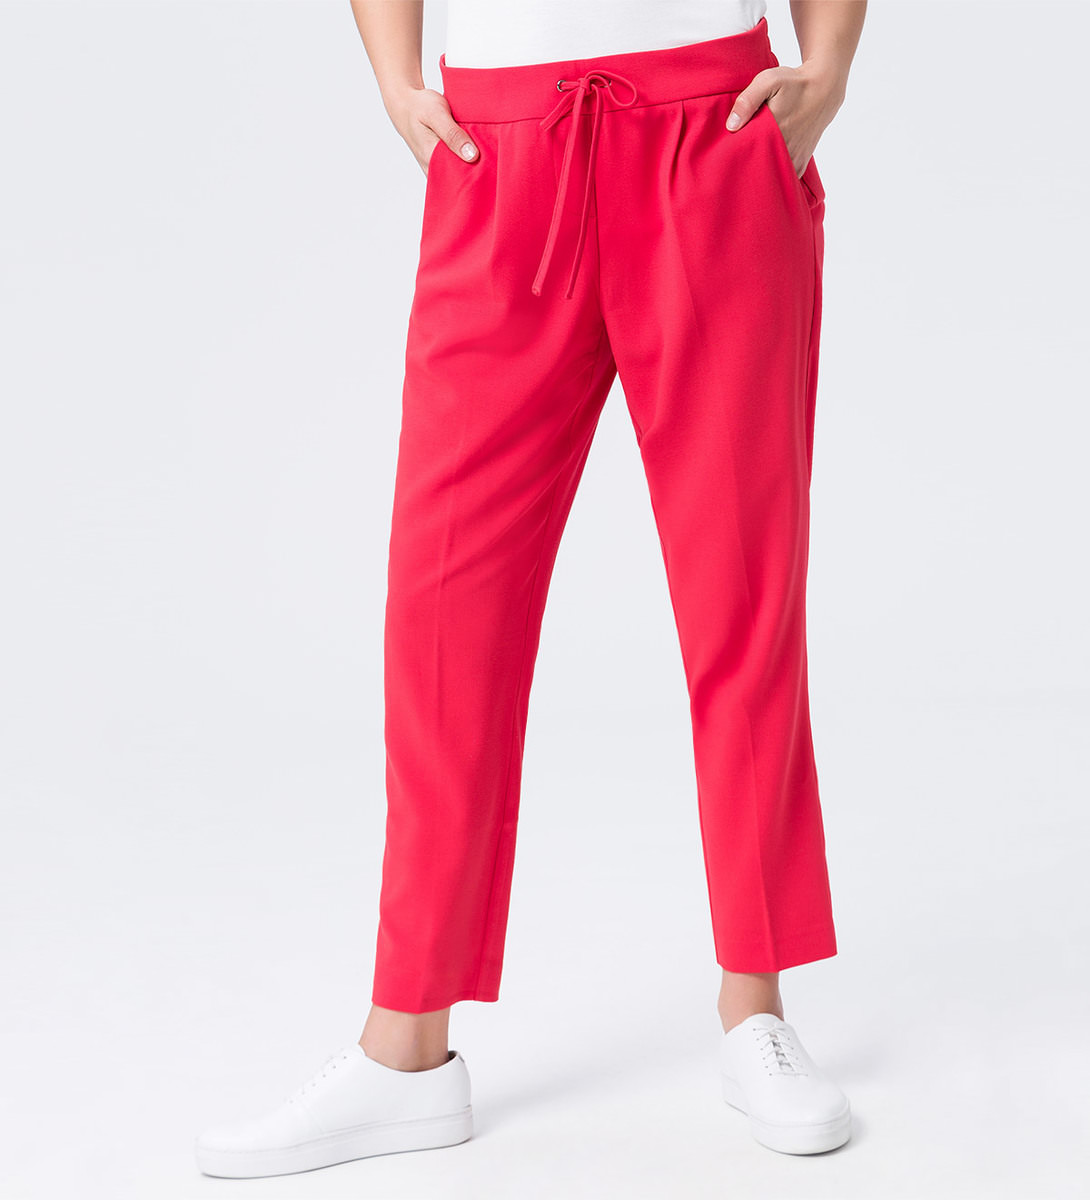 Hose mit Tunnelzug in hot coral